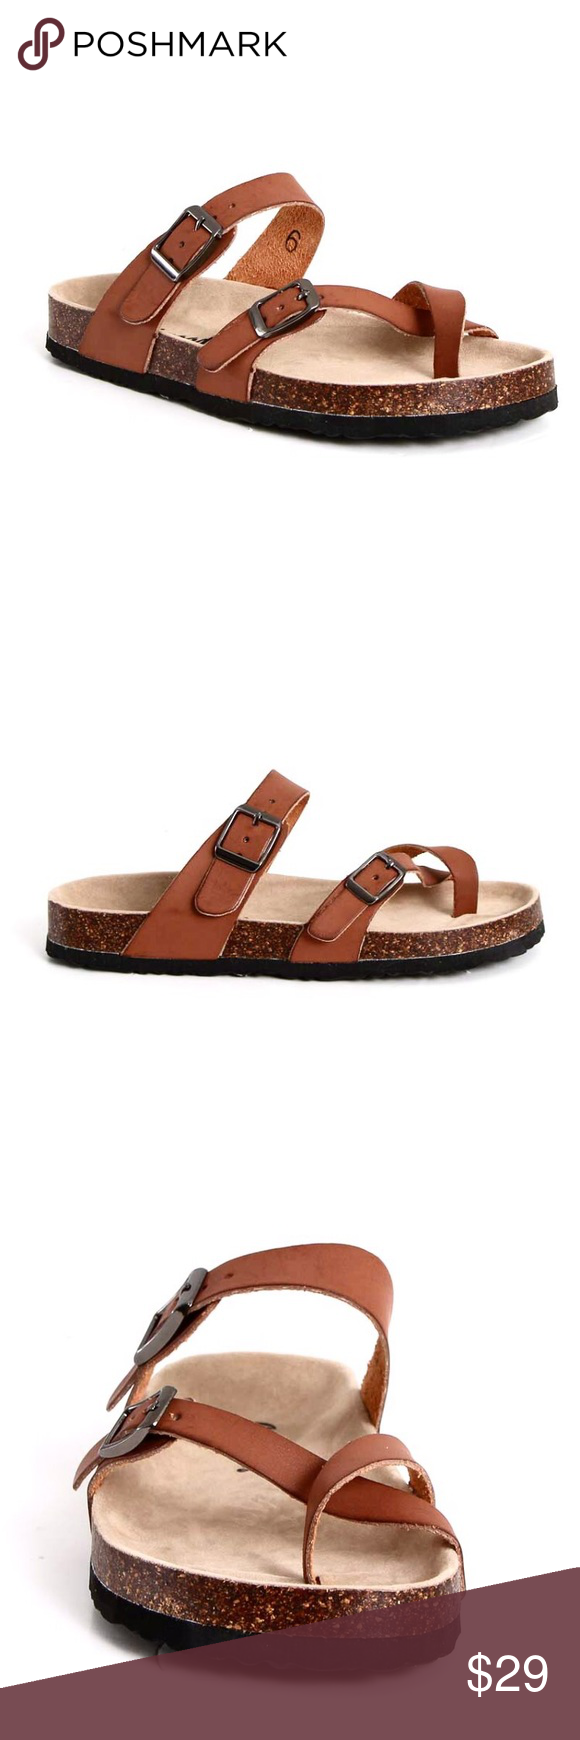 cfbec35ecc2c Outwoods Brown Sandals Silhouette sandal features adjustable buckles,  synthetic suede cork footbed and lightly padded insole. Medium width, runs  a size ...